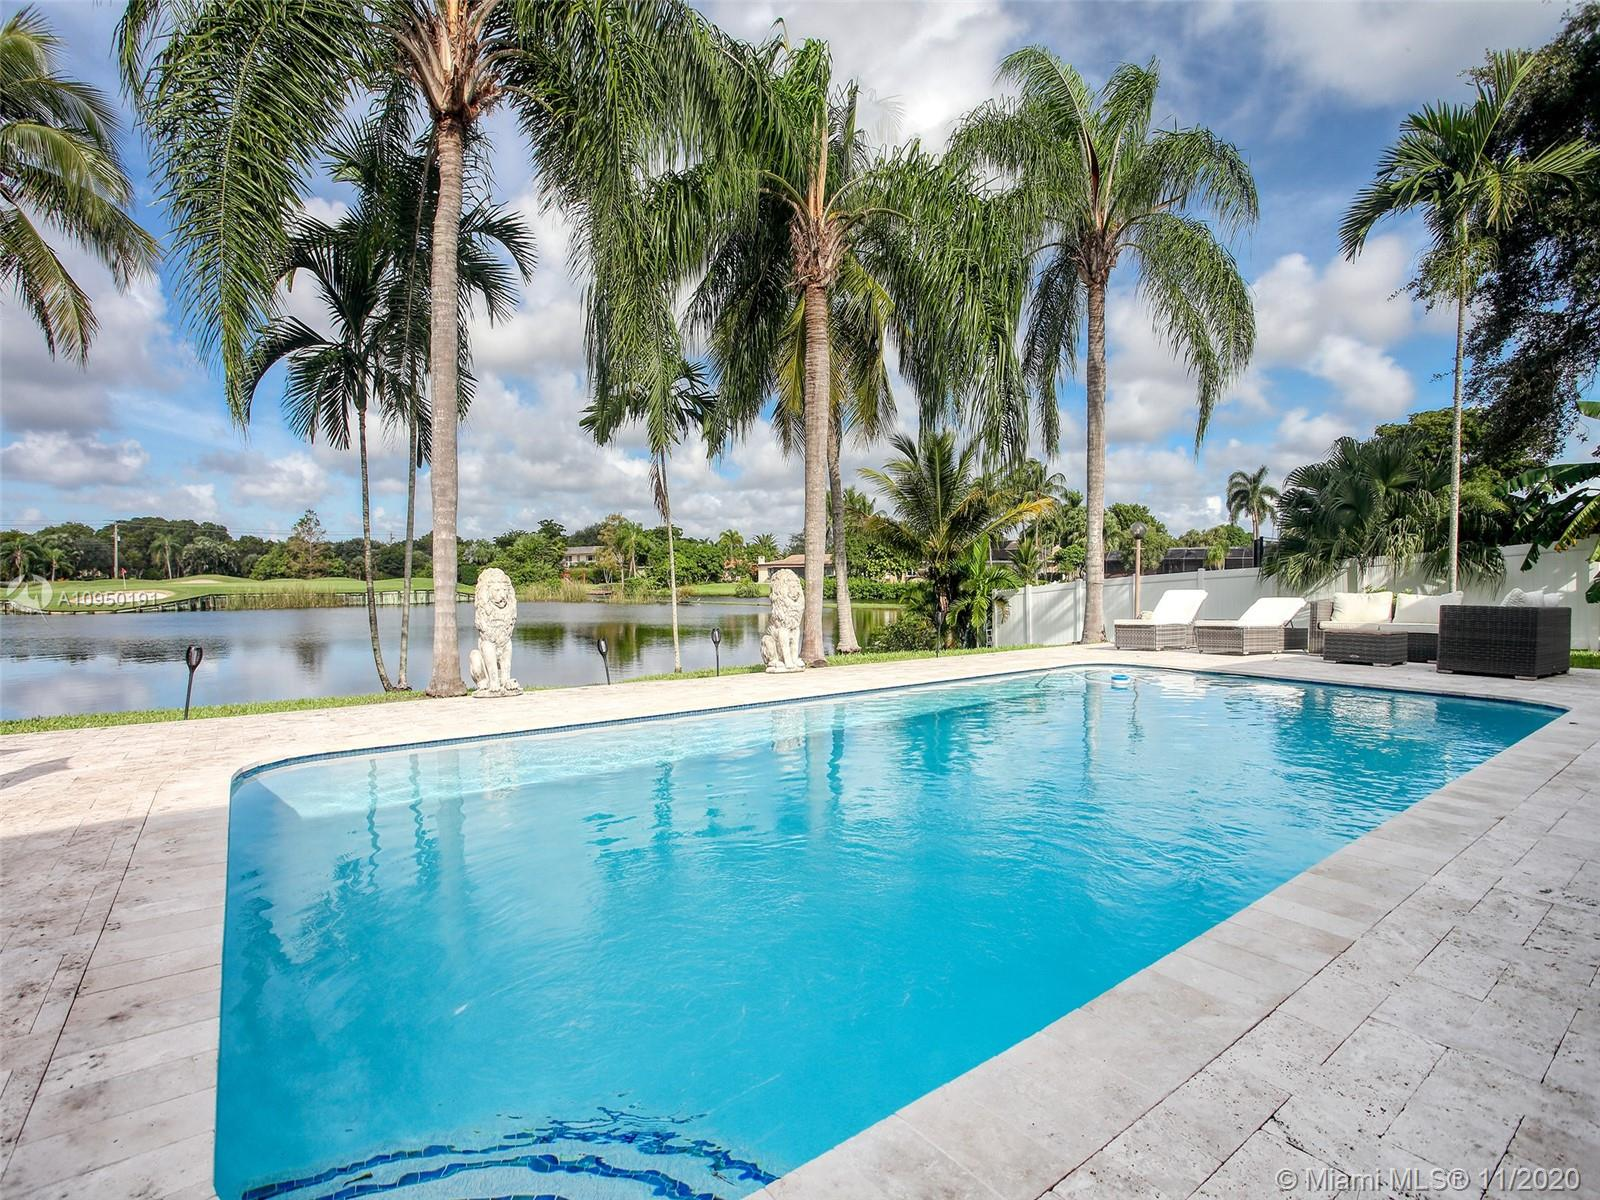 LOCATION LOCATION...MAGNIFICENT ONE STORY 5 BDR 4 BATH *PLUS* GAME ROOM/OFFICE IN DESIRABLE EMERALD HILLS. SOAK UP THE FLORIDIAN SUN BY THE NEWLY RESURFACED POOL AND THE BREATHTAKING VIEW OF THE LAKE & GOLF COURSE. ENTIRE HOUSE WAS TASTEFULLY REMODELED WITH A CHEF'S DREAM KITCHEN FEATURES A HUGE ISLAND WITH CABINETS ON BOTH SIDES, HIGH-END APPLIANCES & FLUSH CEILING HOOD. SPACIOUS LIVING SPACE WITH 2 SETS OF SLIDING DOORS TO ENJOY INDOOR/OUTDOOR ENTERTAINMENT. 2 CAR GARAGE & 12+ CARS CIRCULAR DRWY. ALL NEW SEWER LINES, ALL NEW PLUMBING LINES, ALL NEW ELECTRIC WIRING & PANELS, 2 NEW A/C'S & A/C DUCTS, NEW SPRINKLER SYSTEM, SOME IMPACT WINDOWS, TOO MANY UPDATES TO LIST...BRING IN YOUR MOST SPOILED BUYERS. CLOSE TO HWY,  AVENTURA MALL & SAWGRASS.  *WALKING DISTANCE TO MANY HOUSE OF WORSHIP*